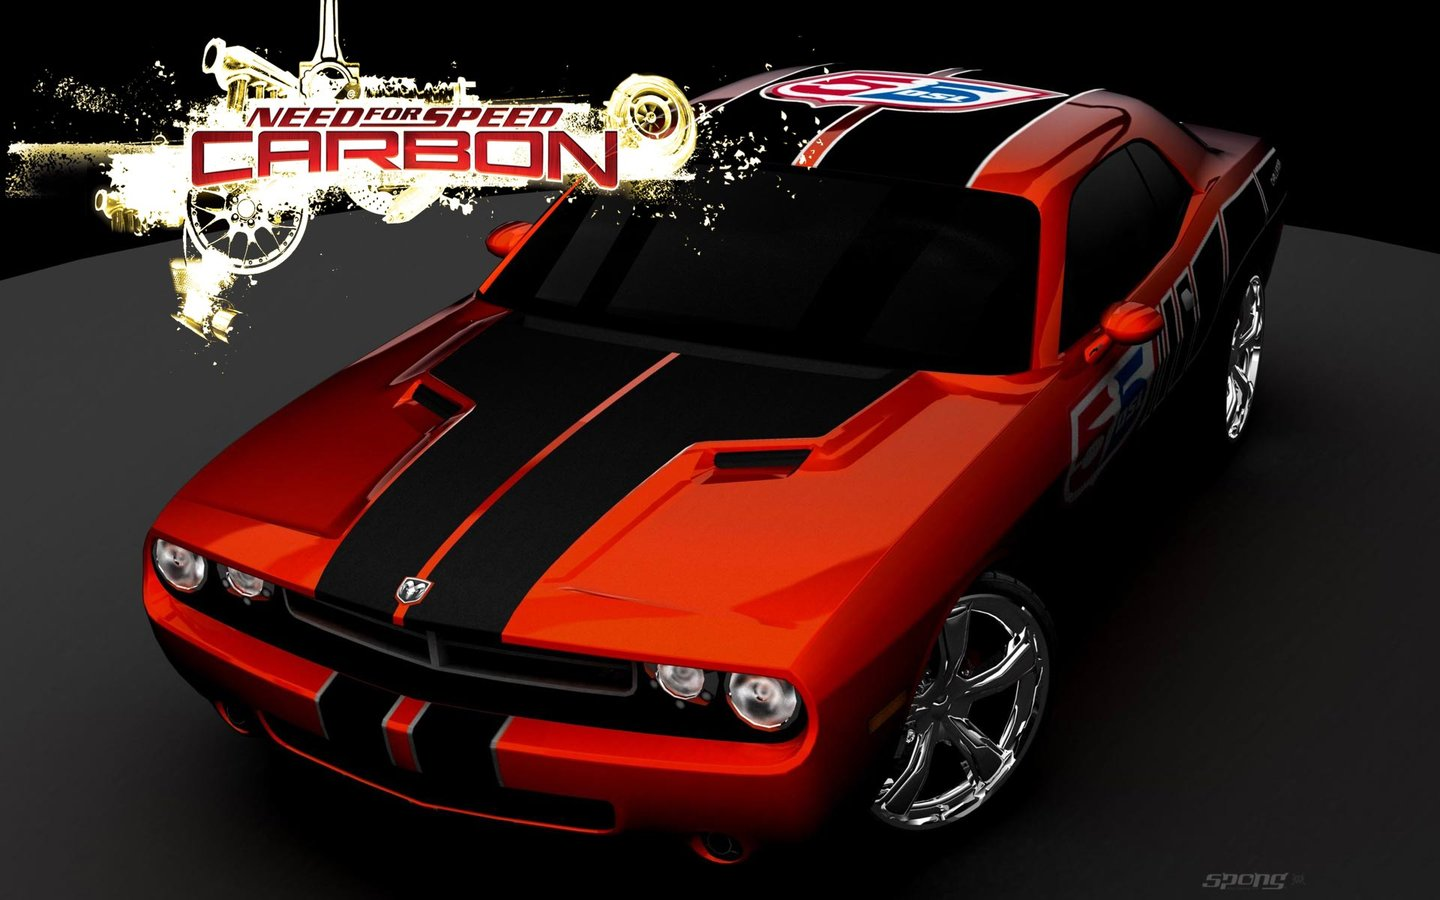 Wallpapers: Need For Speed: Carbon - PS2 (4 of 4)